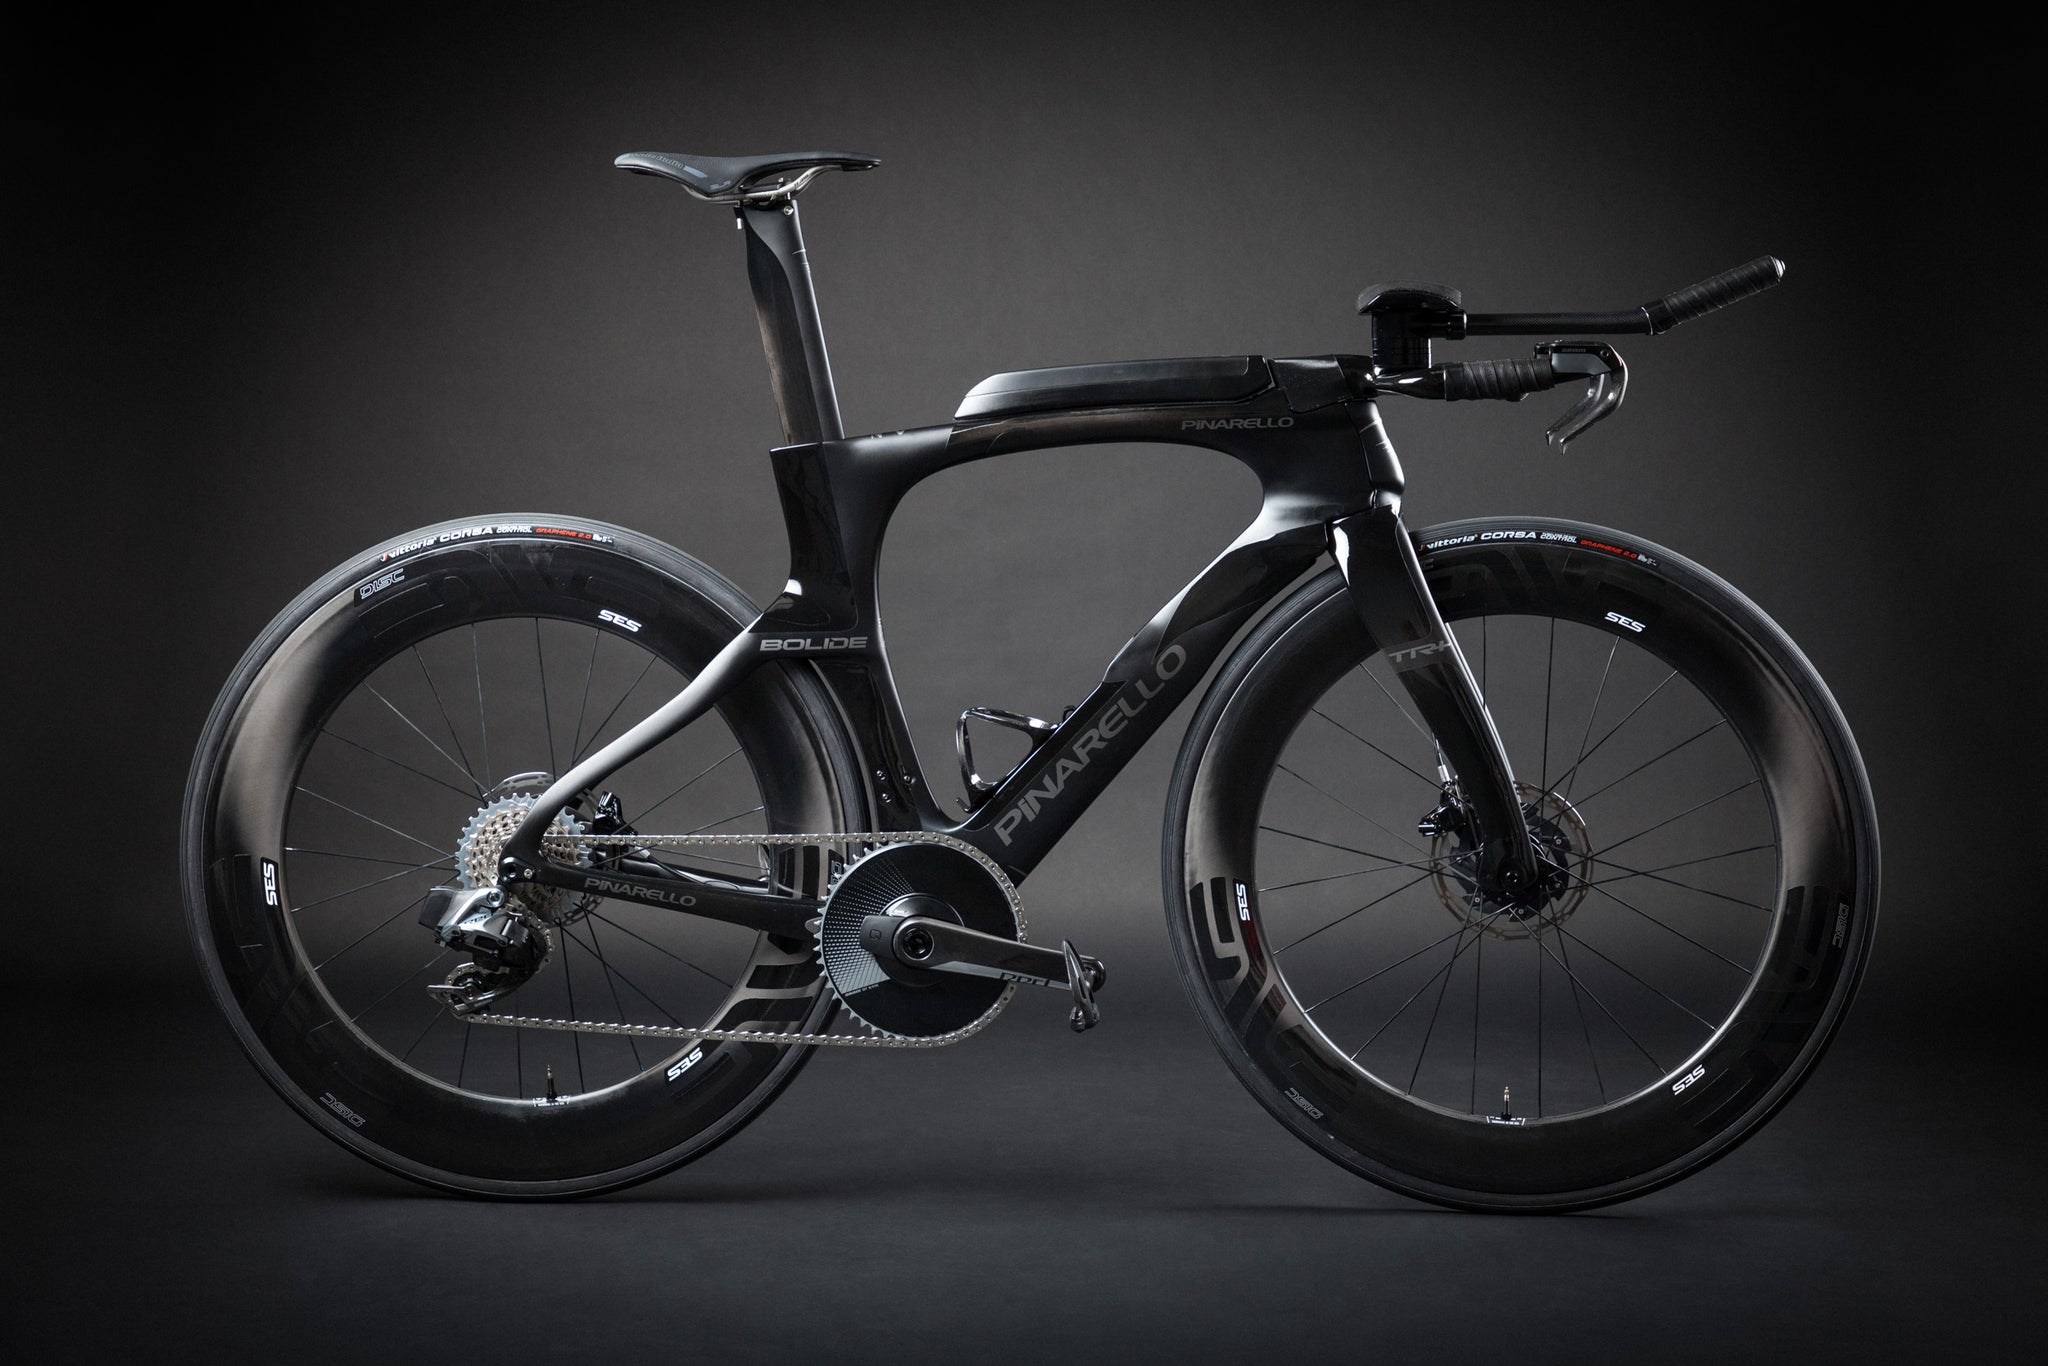 A Blacked Out Pinarello Bolide Gallery bike profile